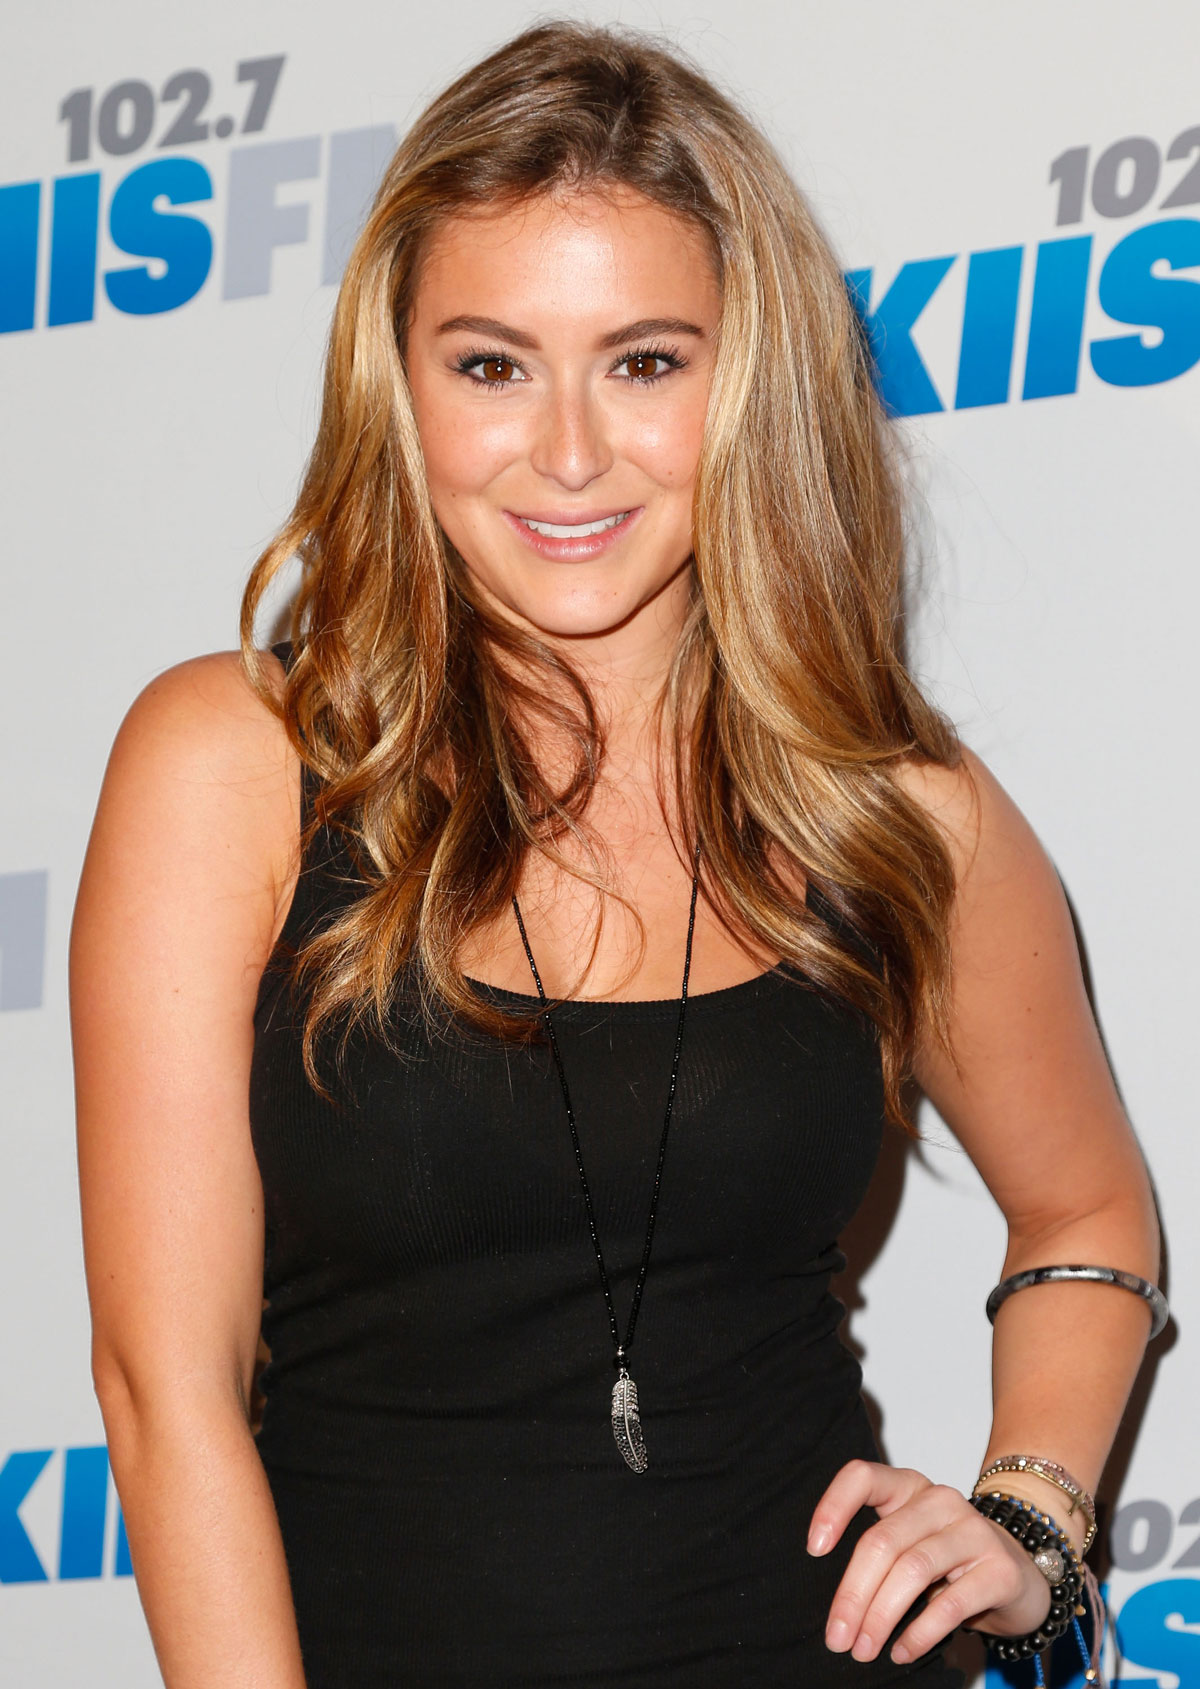 Pictures Alexa Vega nude (57 photo), Topless, Fappening, Boobs, braless 2019